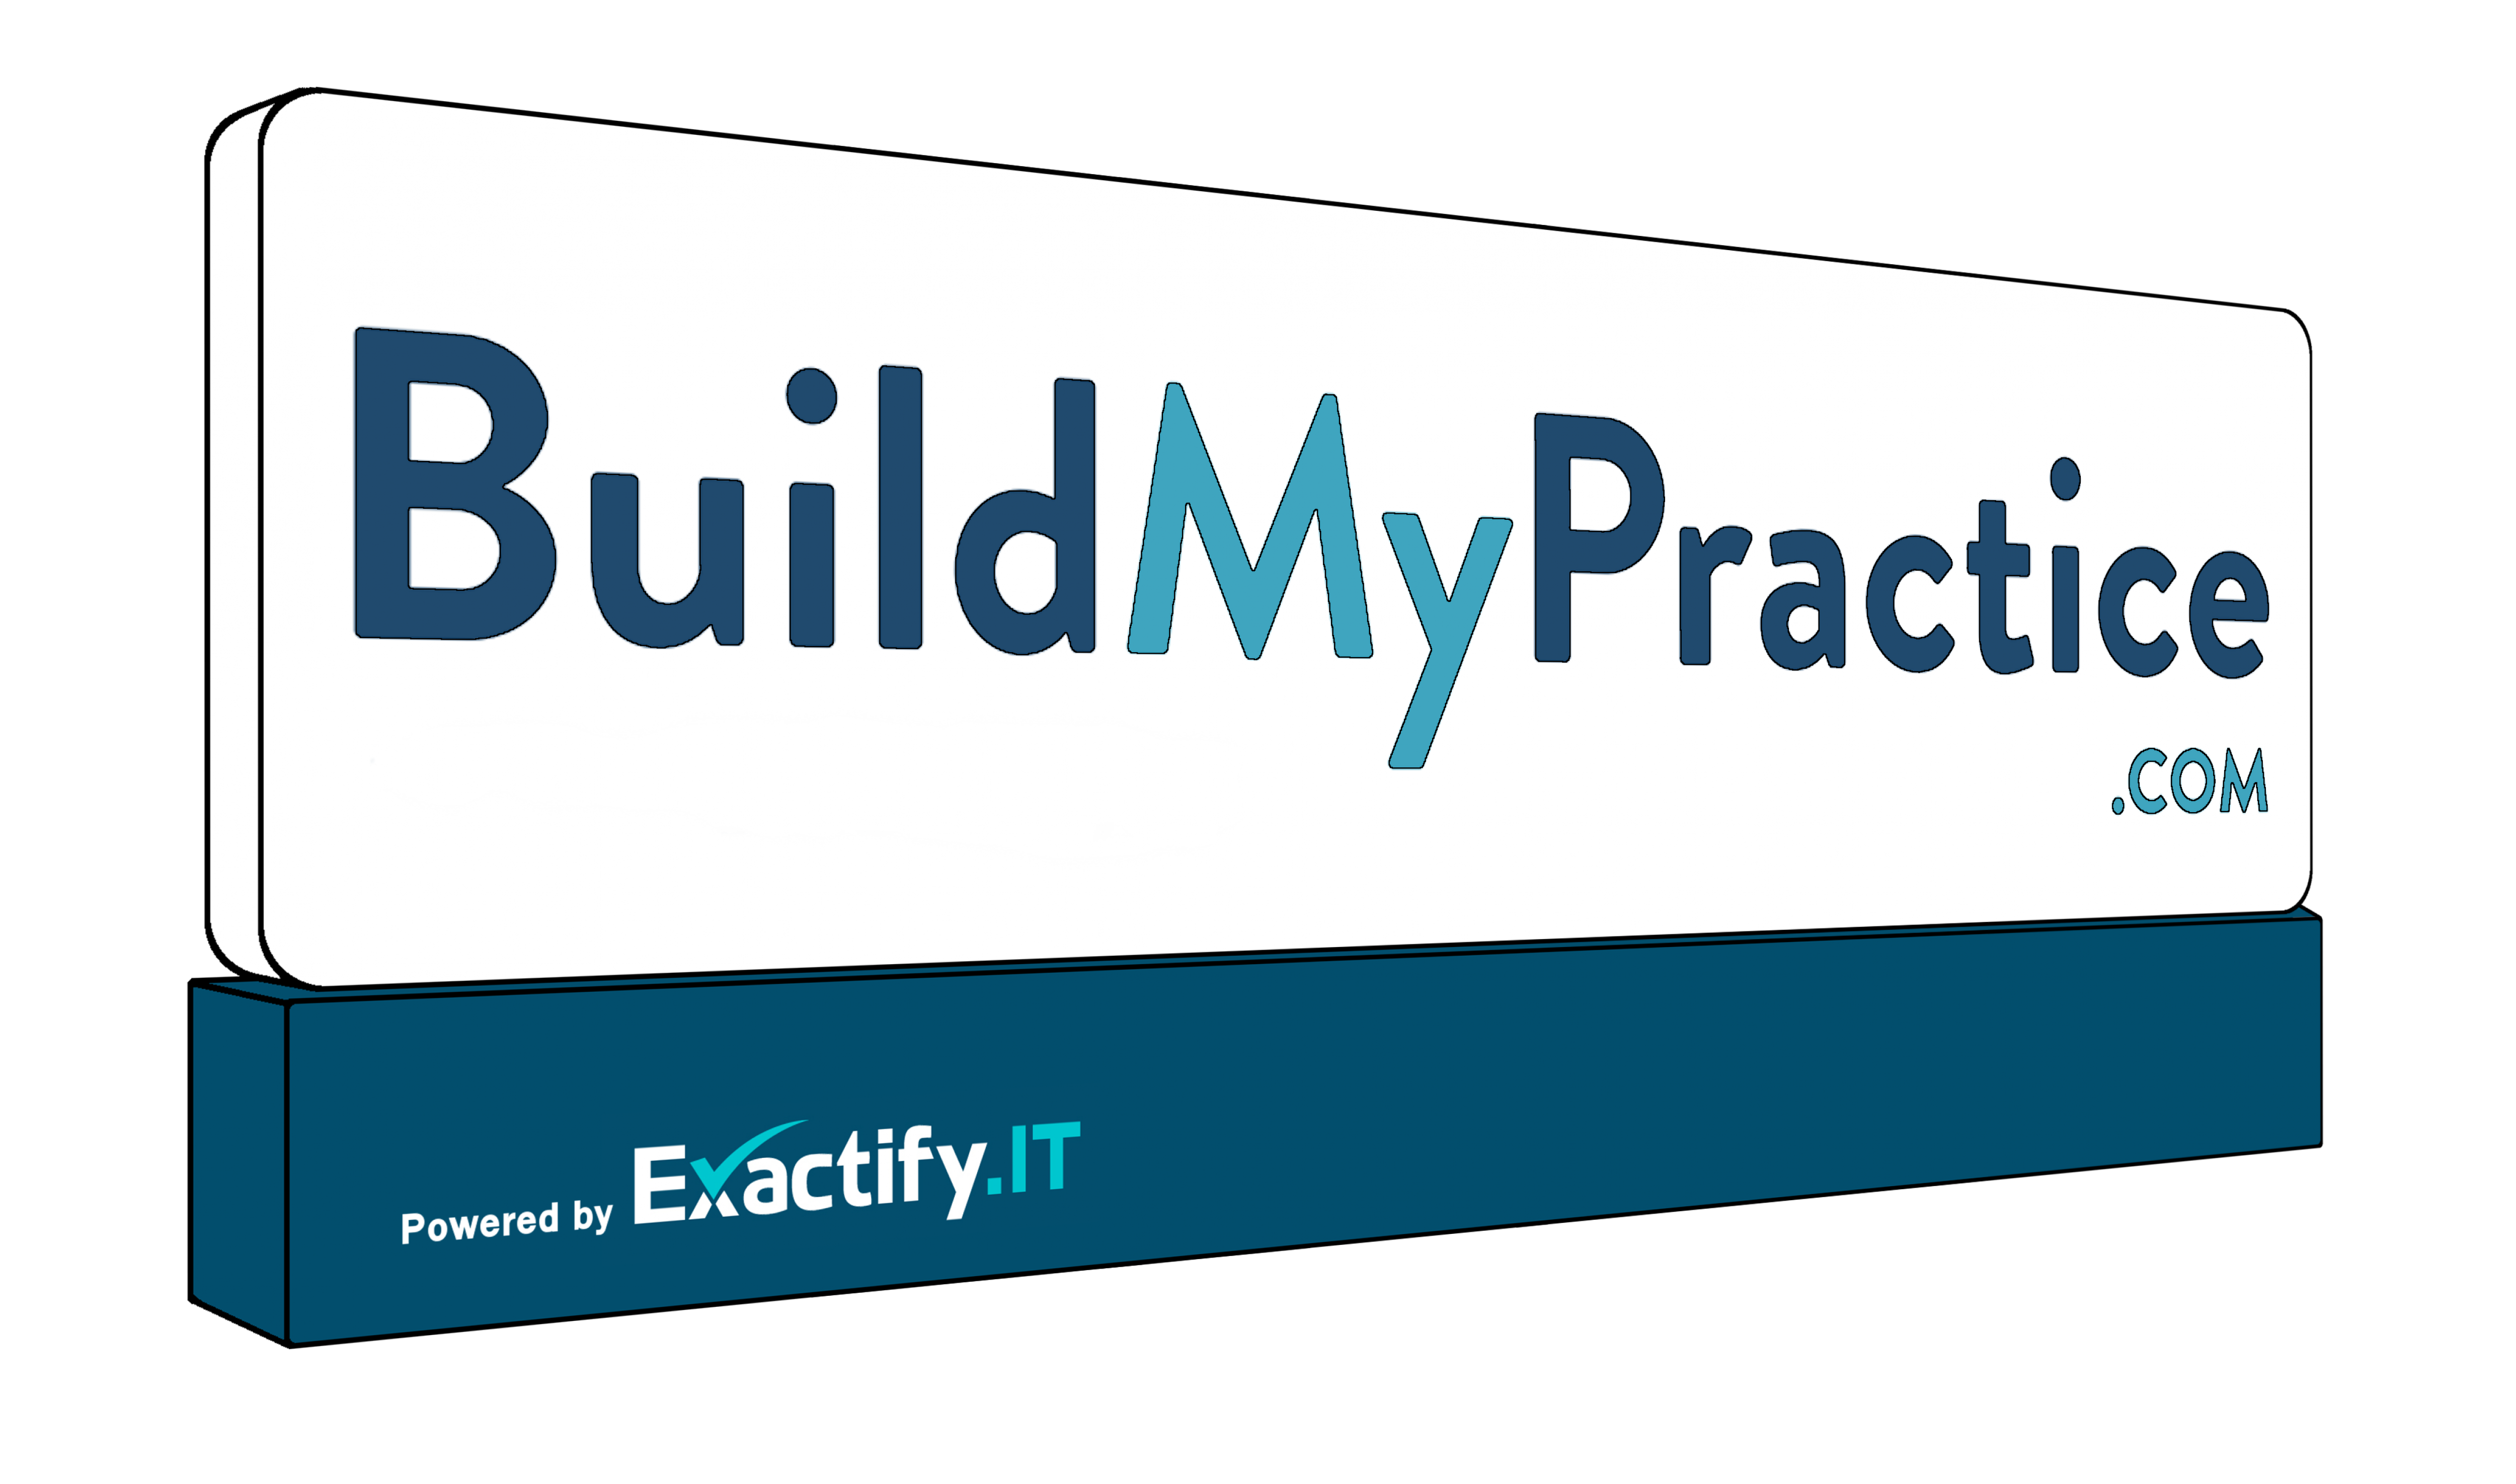 BuildMyPractice Sign Mock-Up 10-15-17_no drop shadow